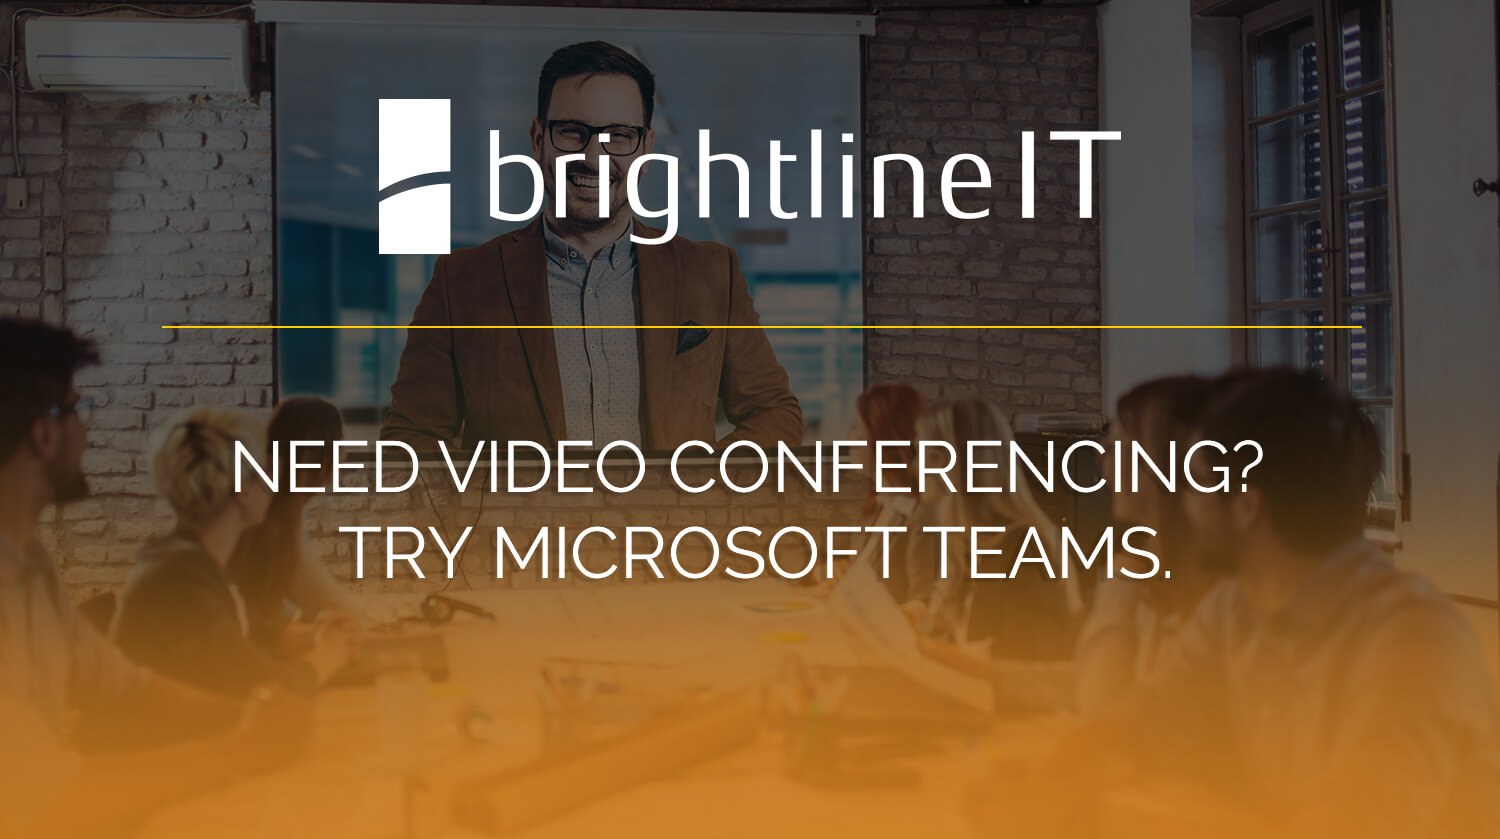 Need Video Conferencing? Try Microsoft Teams.